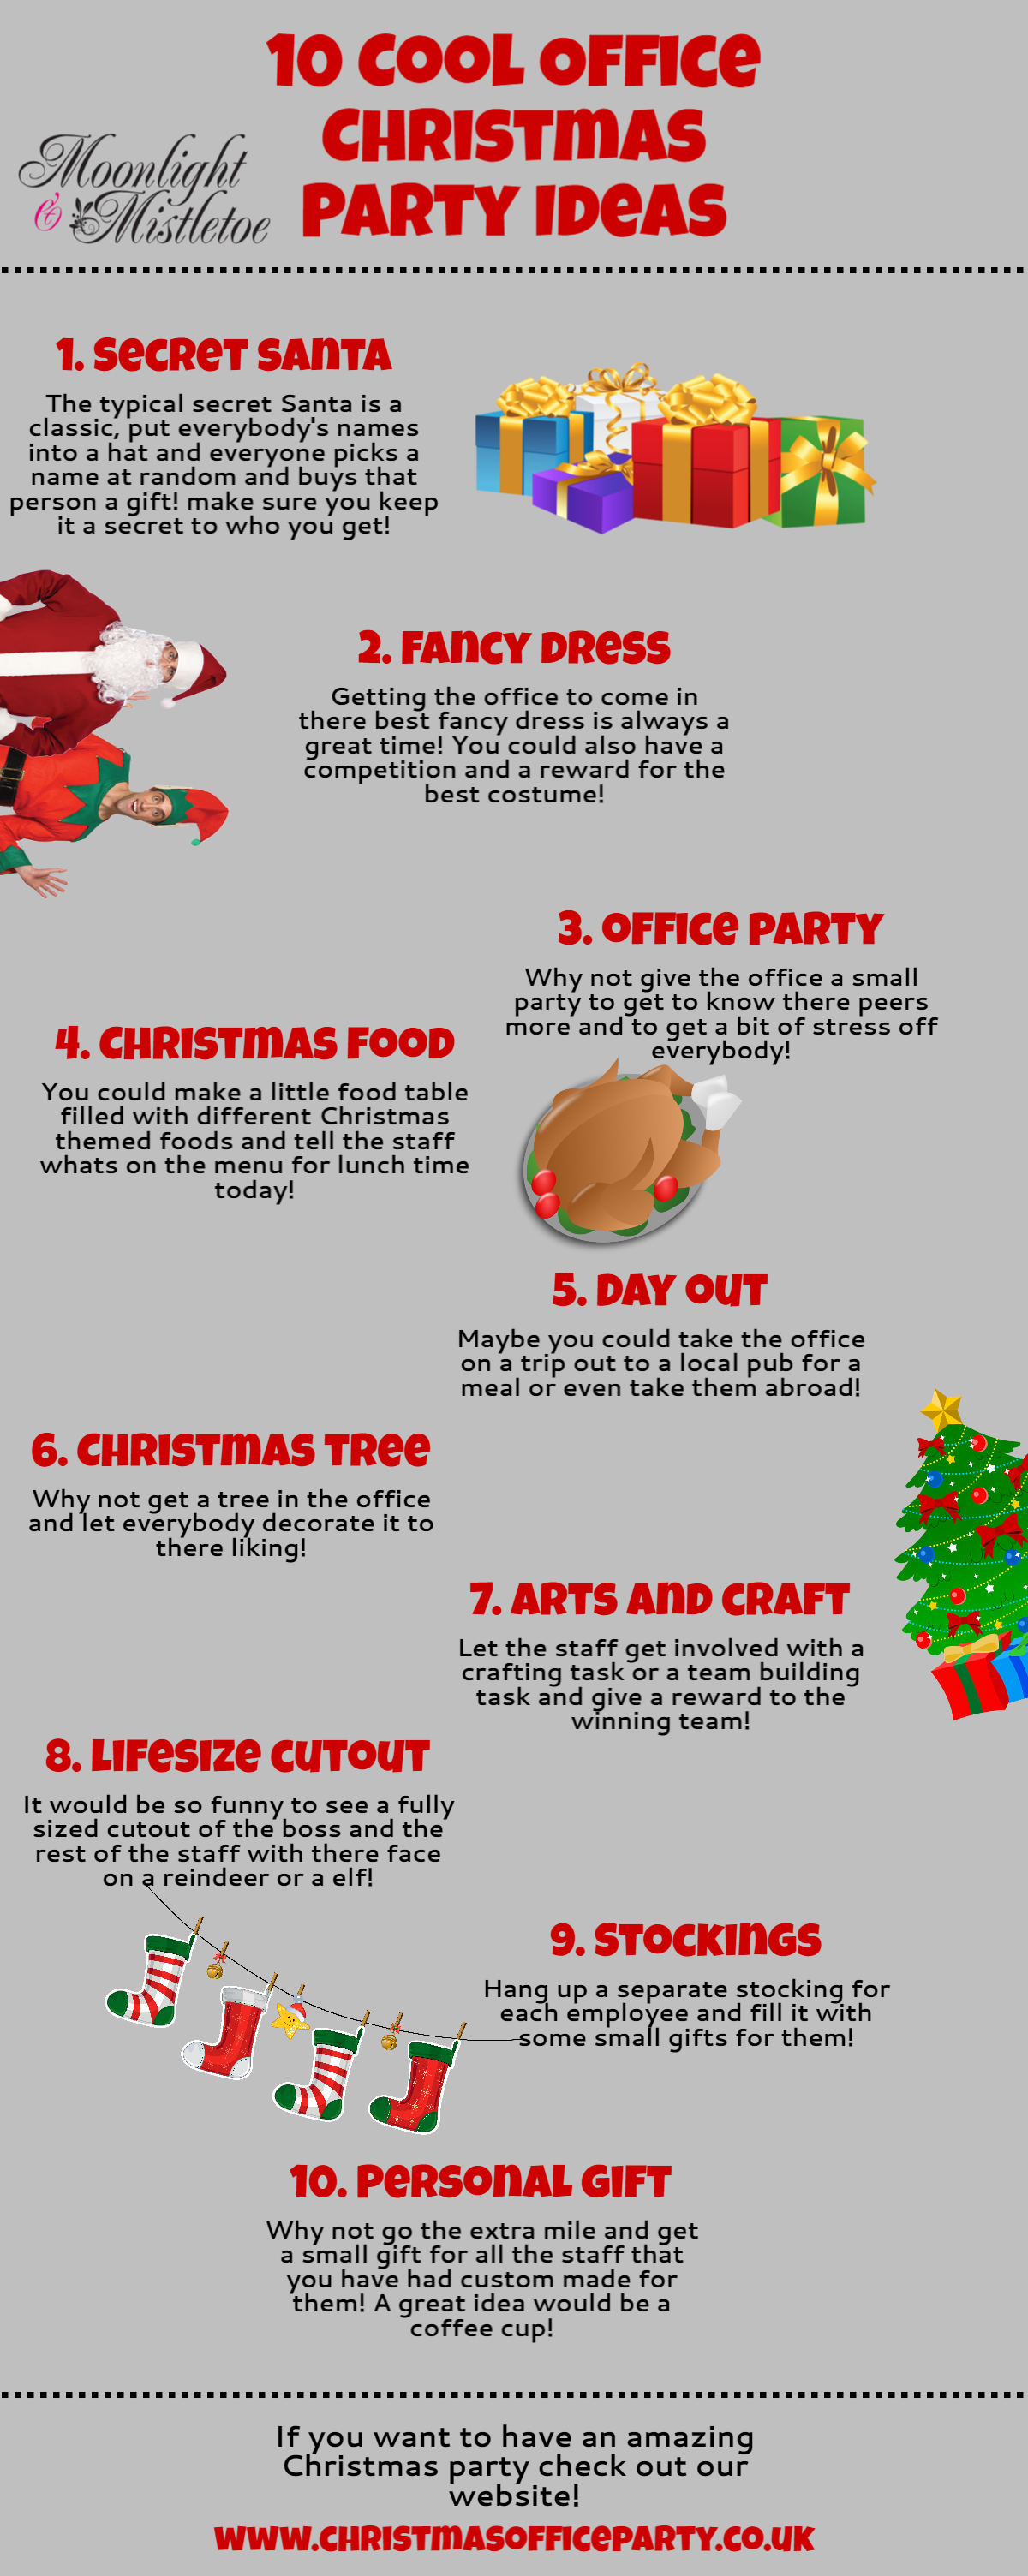 10 Cool Office Christmas Party Ideas | MoonlightMistletoe